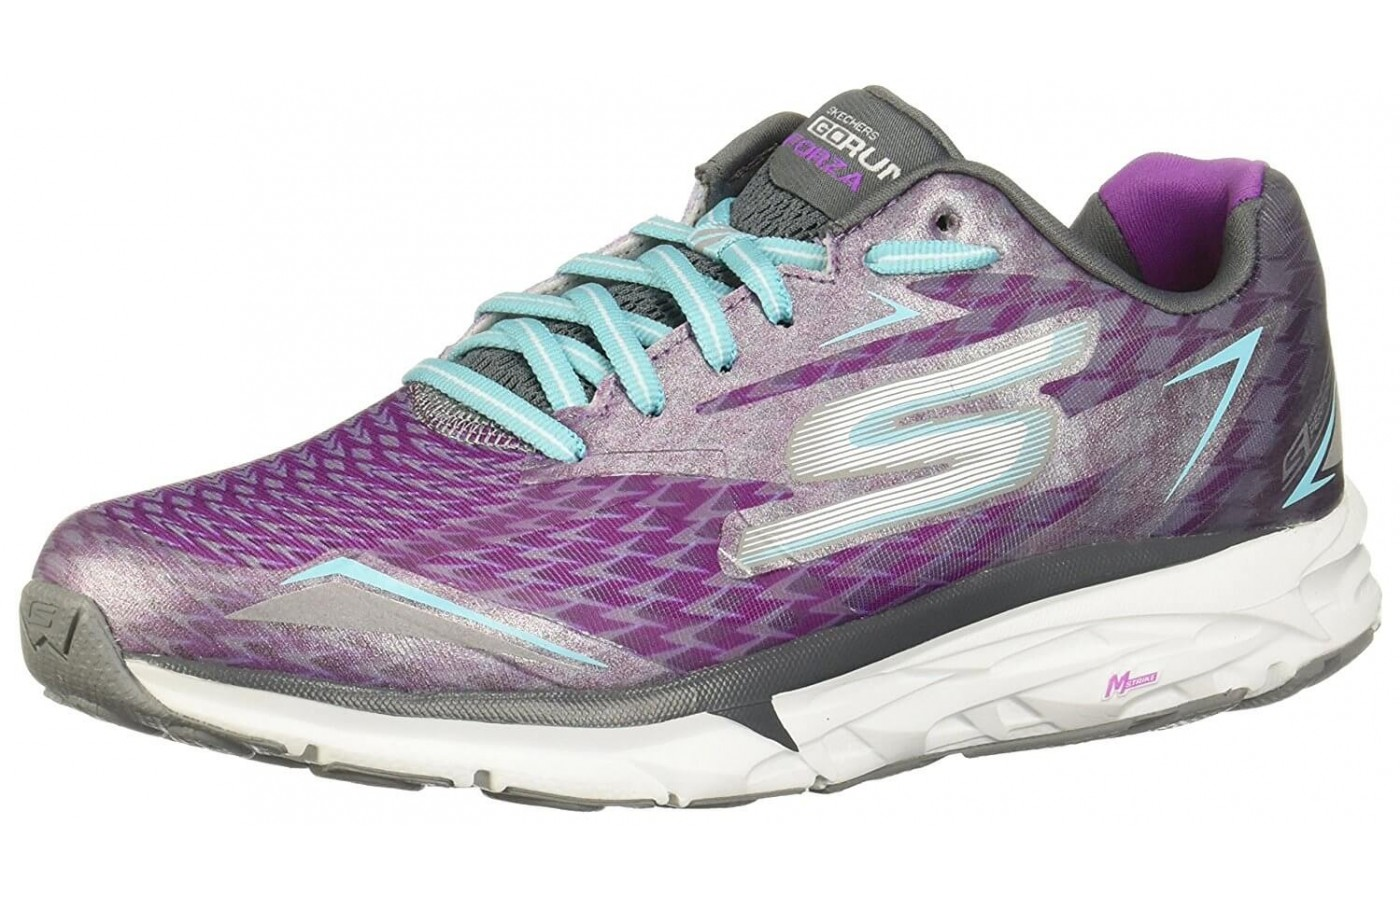 The Skechers GoRUN Forza 2 has a supportive heel counter